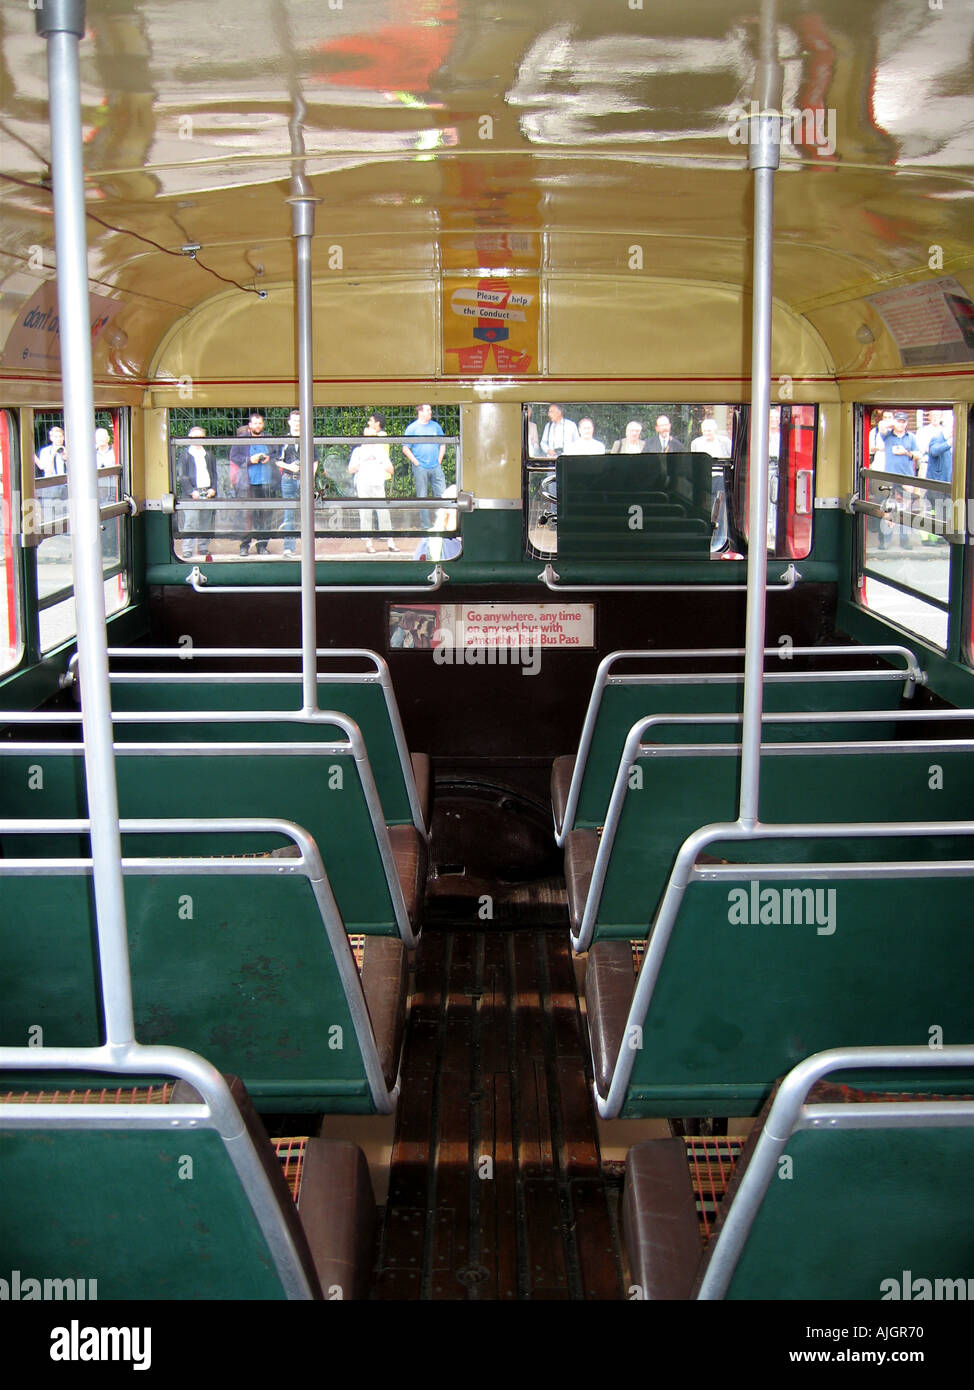 London Preserved RT Bus Interior of Lower Deck - Stock Image